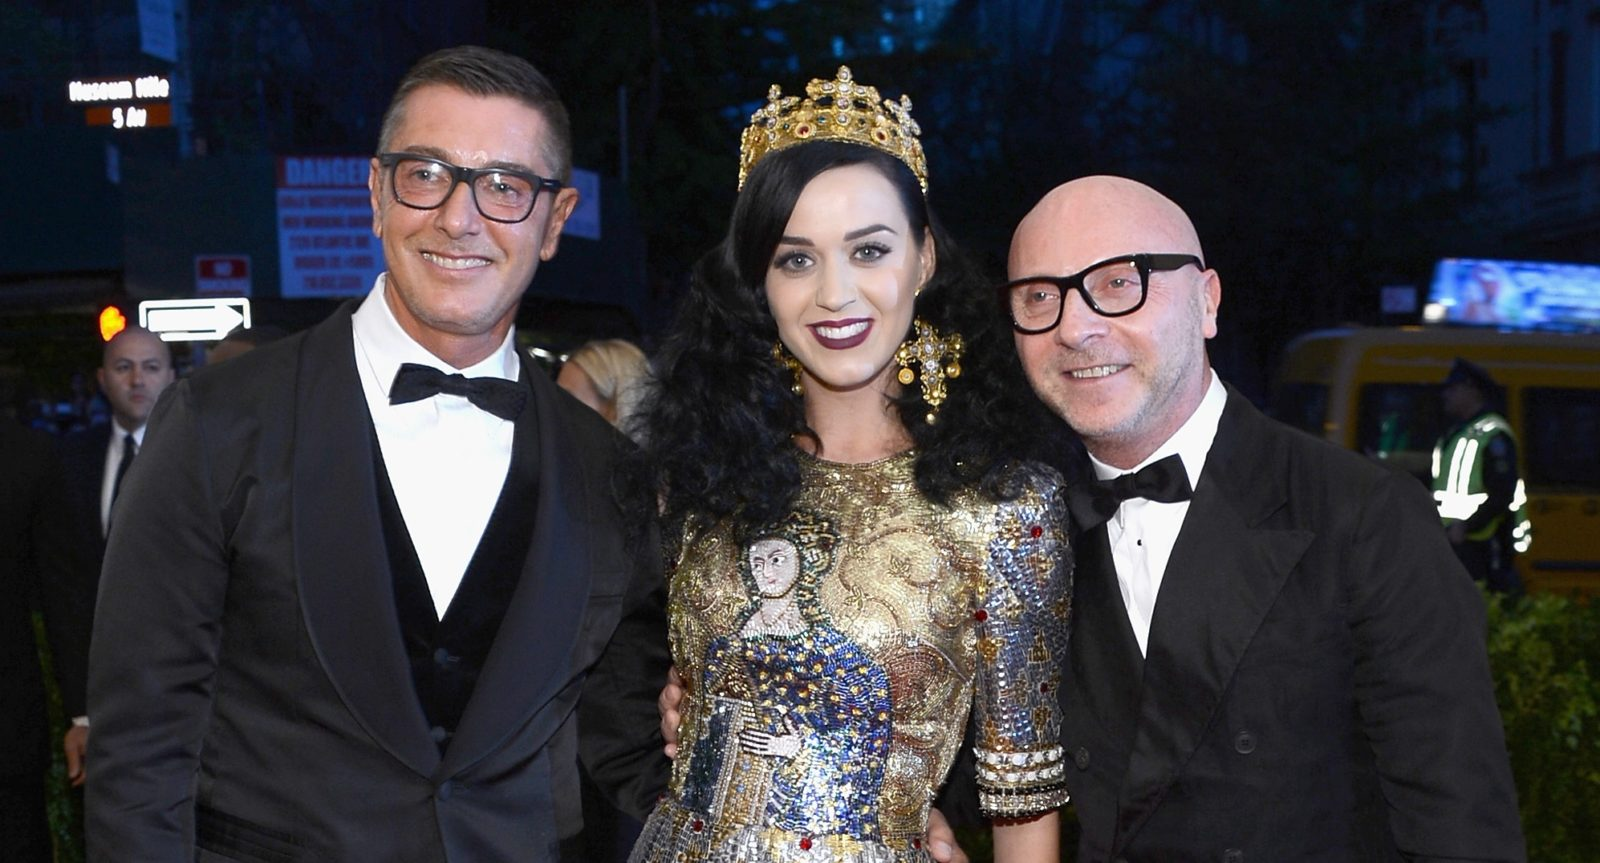 Stop Calling Me Gay Says Fashion Designer Stefano Gabbana